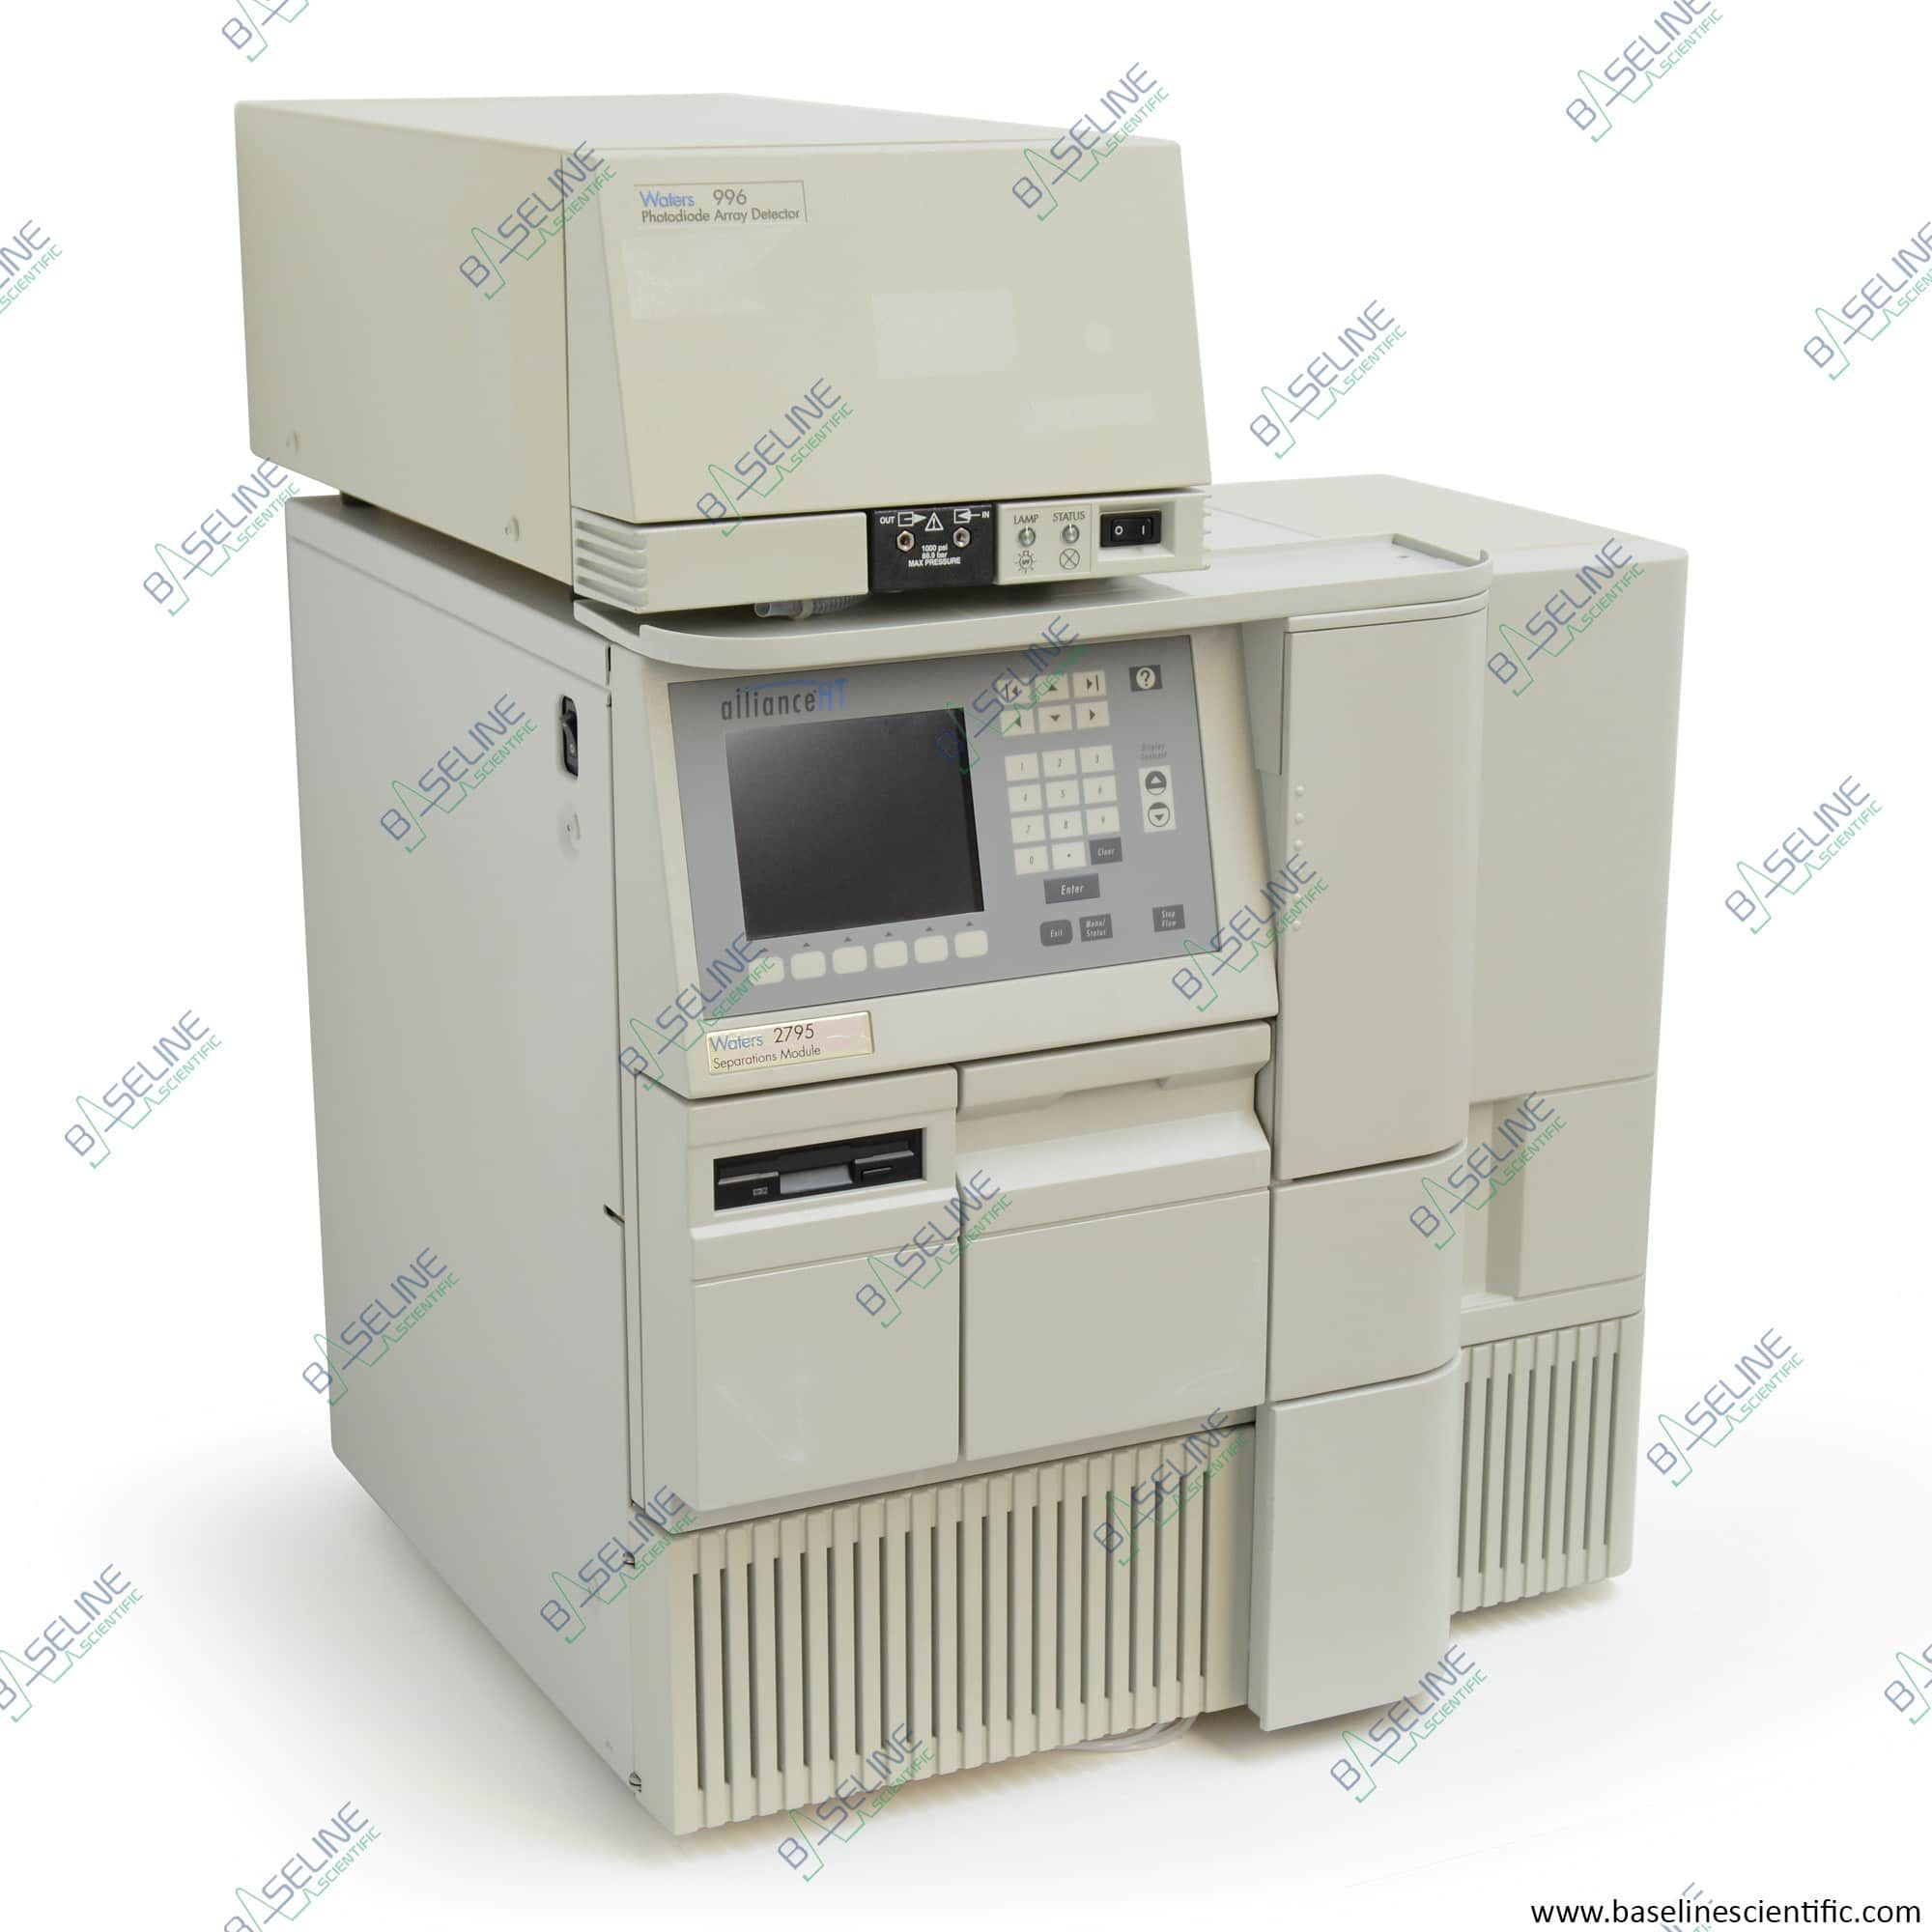 Refurbished Waters Alliance HT 2795 and 996 PDA with ONE YEAR WARRANTY